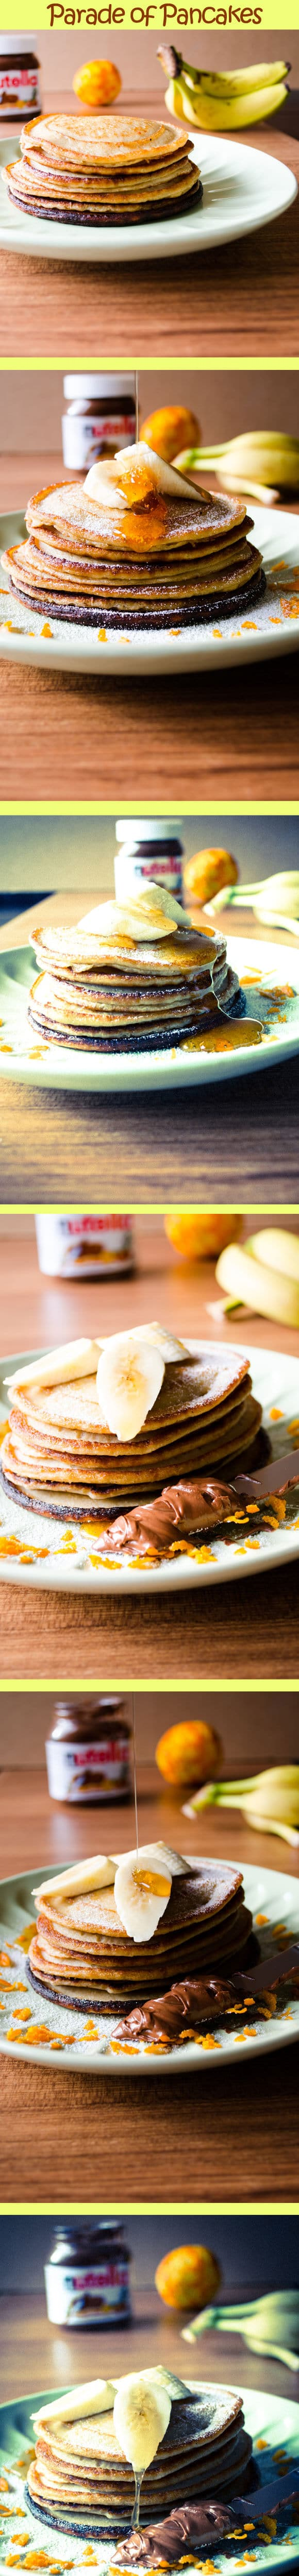 parade of banana pancakes